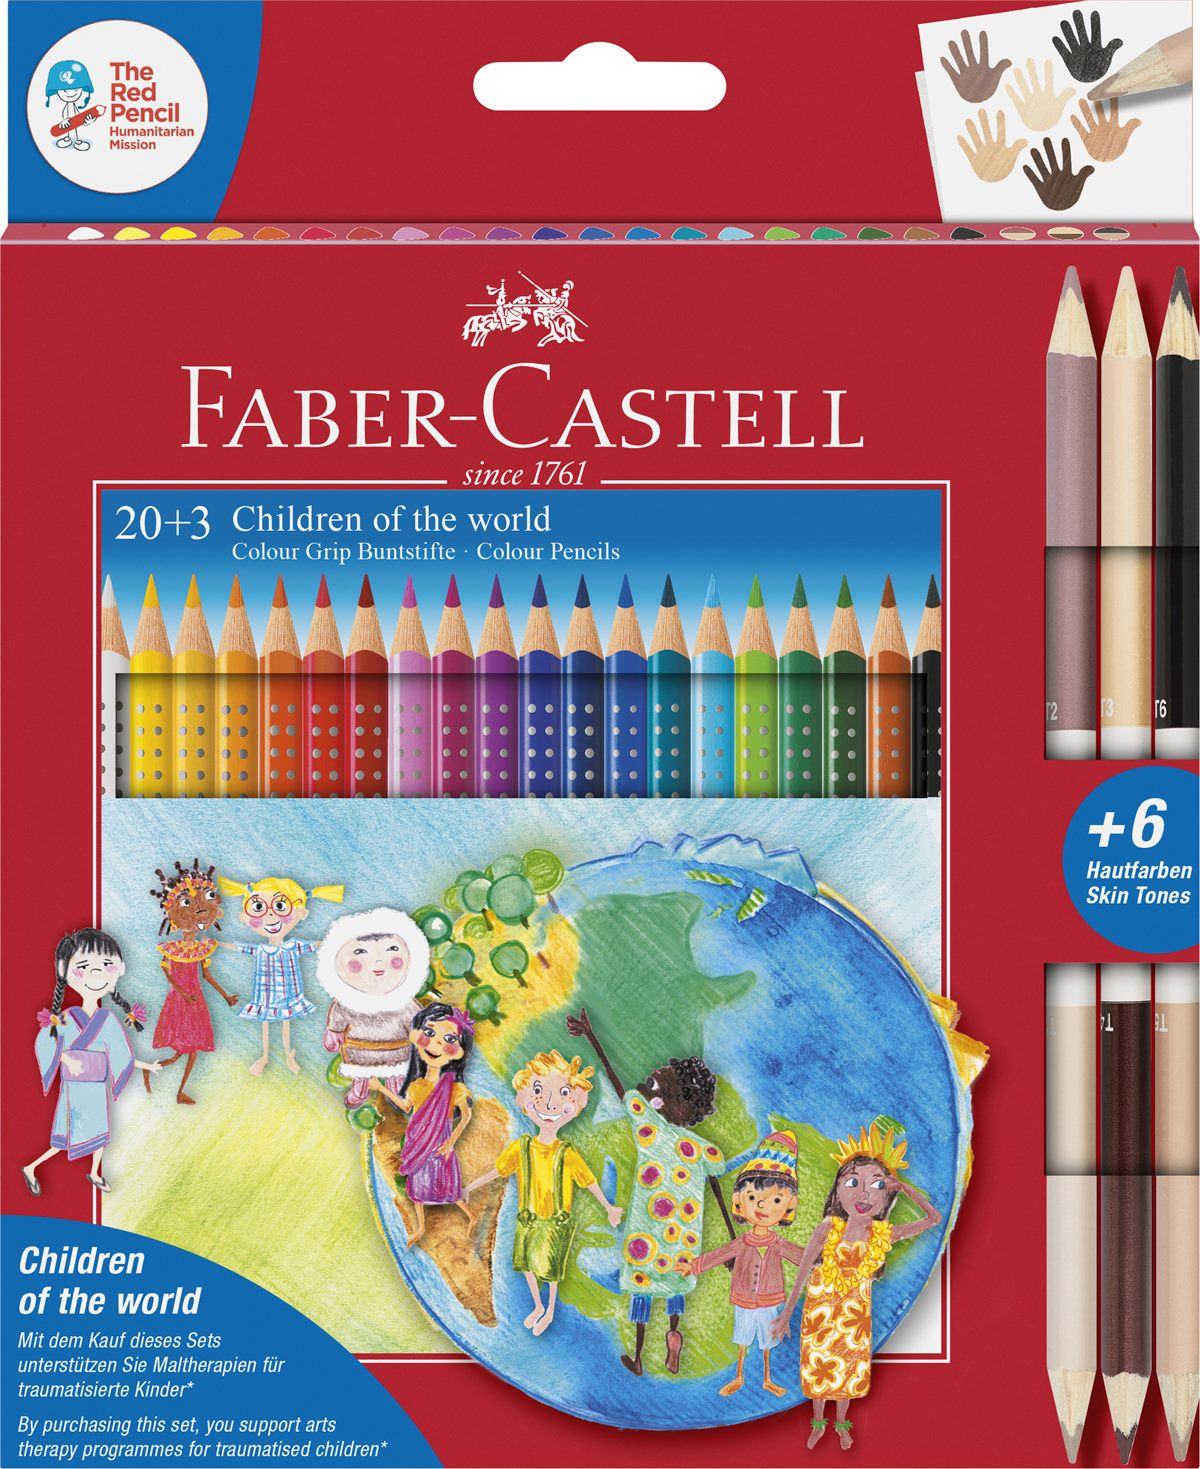 Faber-Castell_Children of the world Buntstiftset 20+3_20 EUR